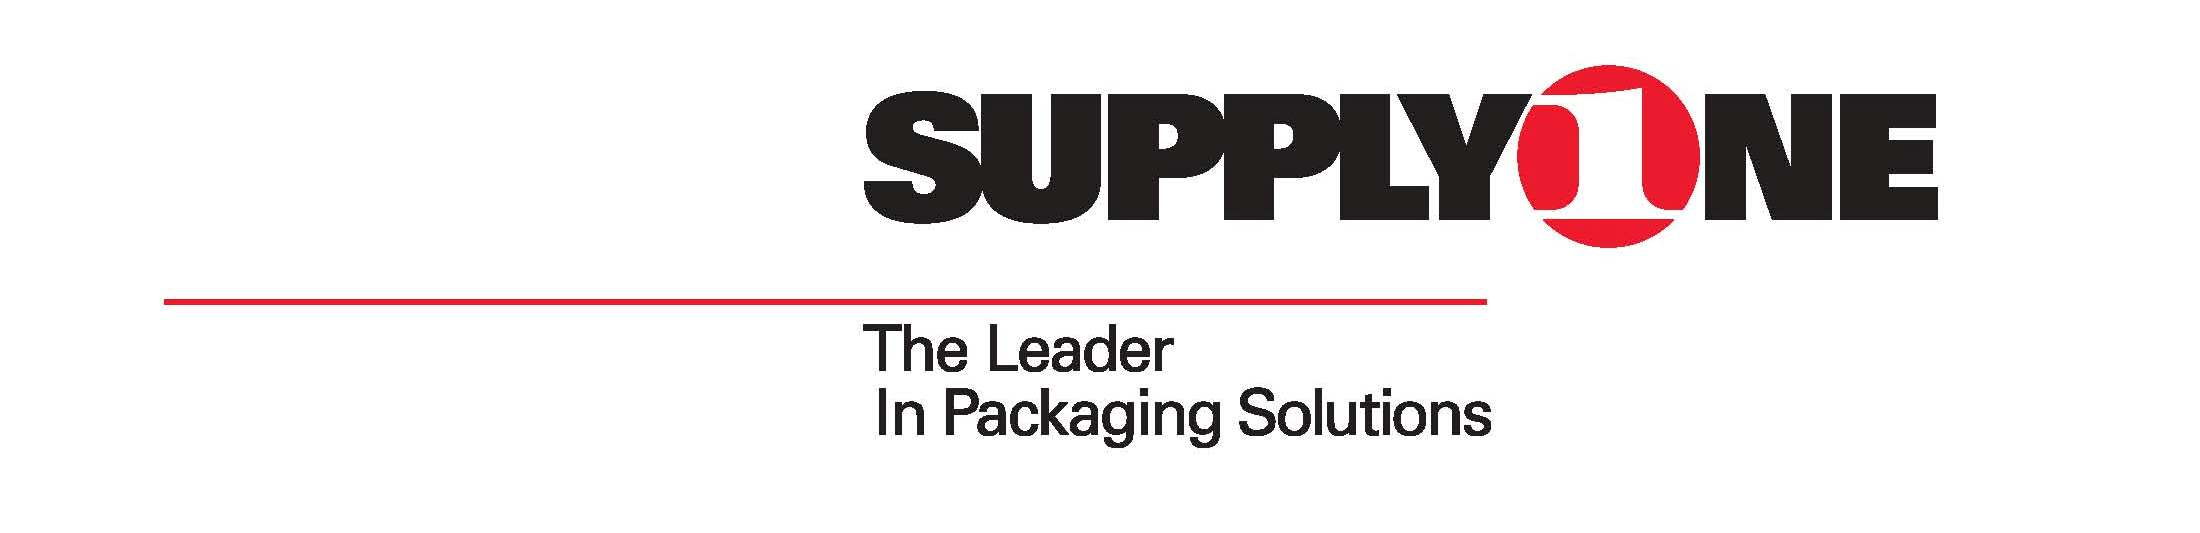 Supply One-The Leader in packaging solutions